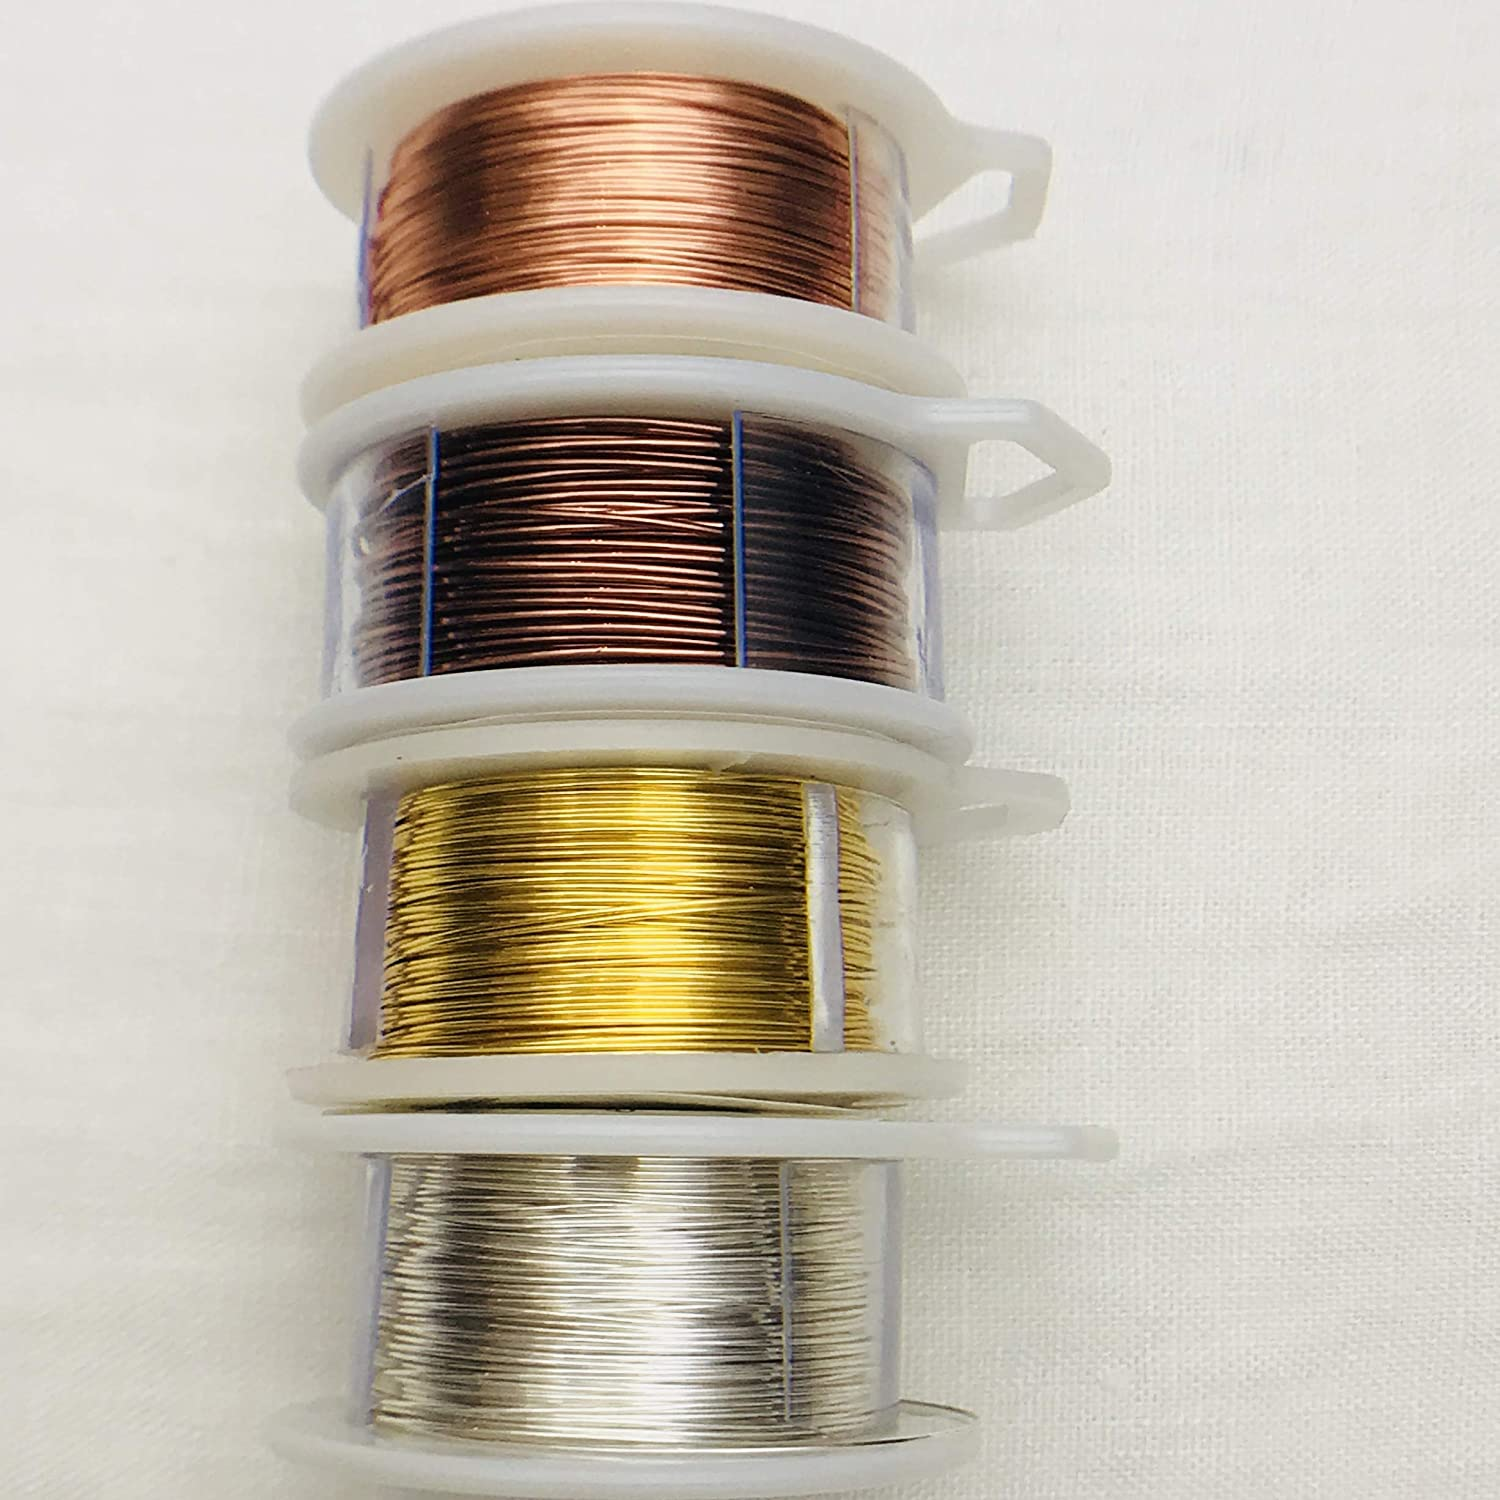 20 Gauge Wire for Craft /& Jewelry Making Tarnish Resistant Silver Gold Copper Antique Multi-Pack